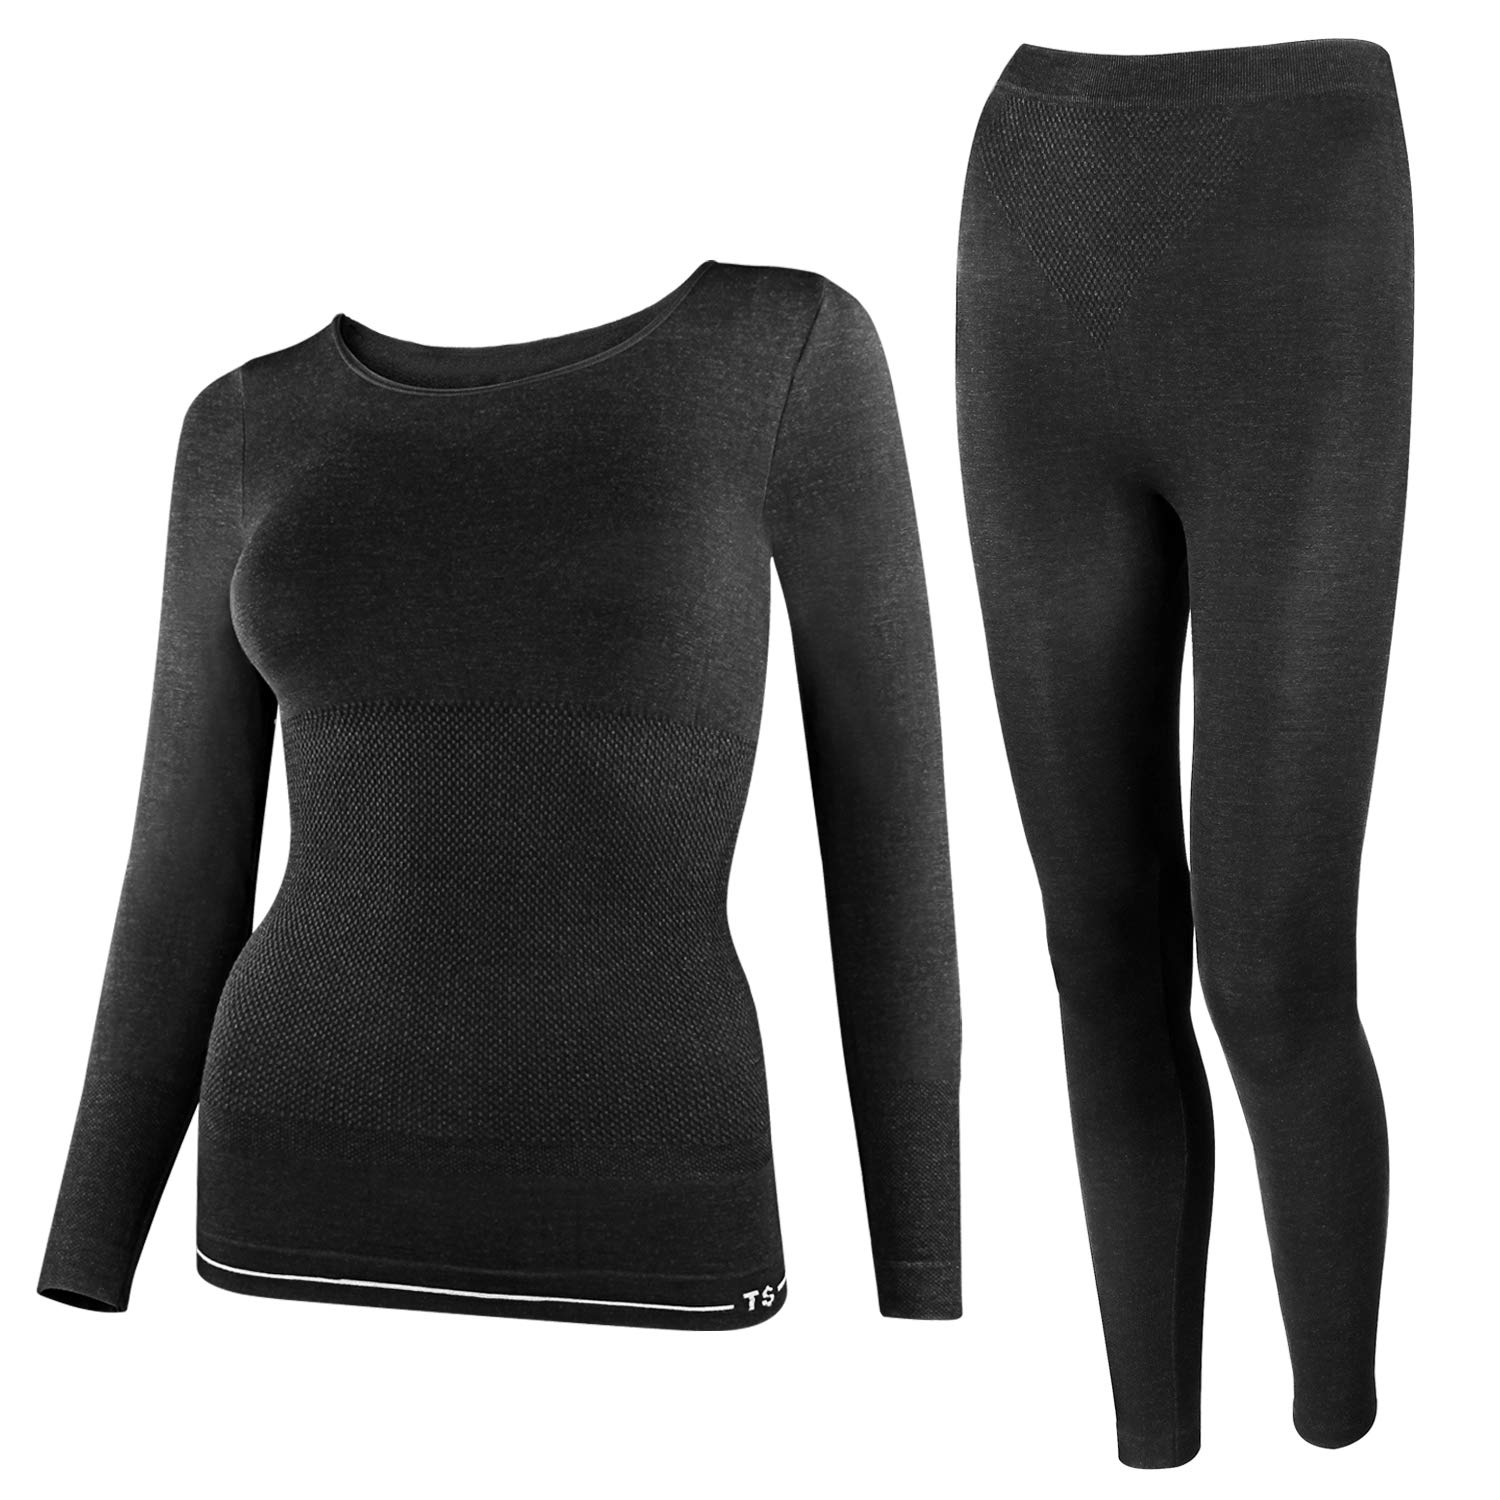 Cierto Womens Thermal Underwear set, Long Sleeve Top and Long Pants for Warm Body in Winter, 1 set